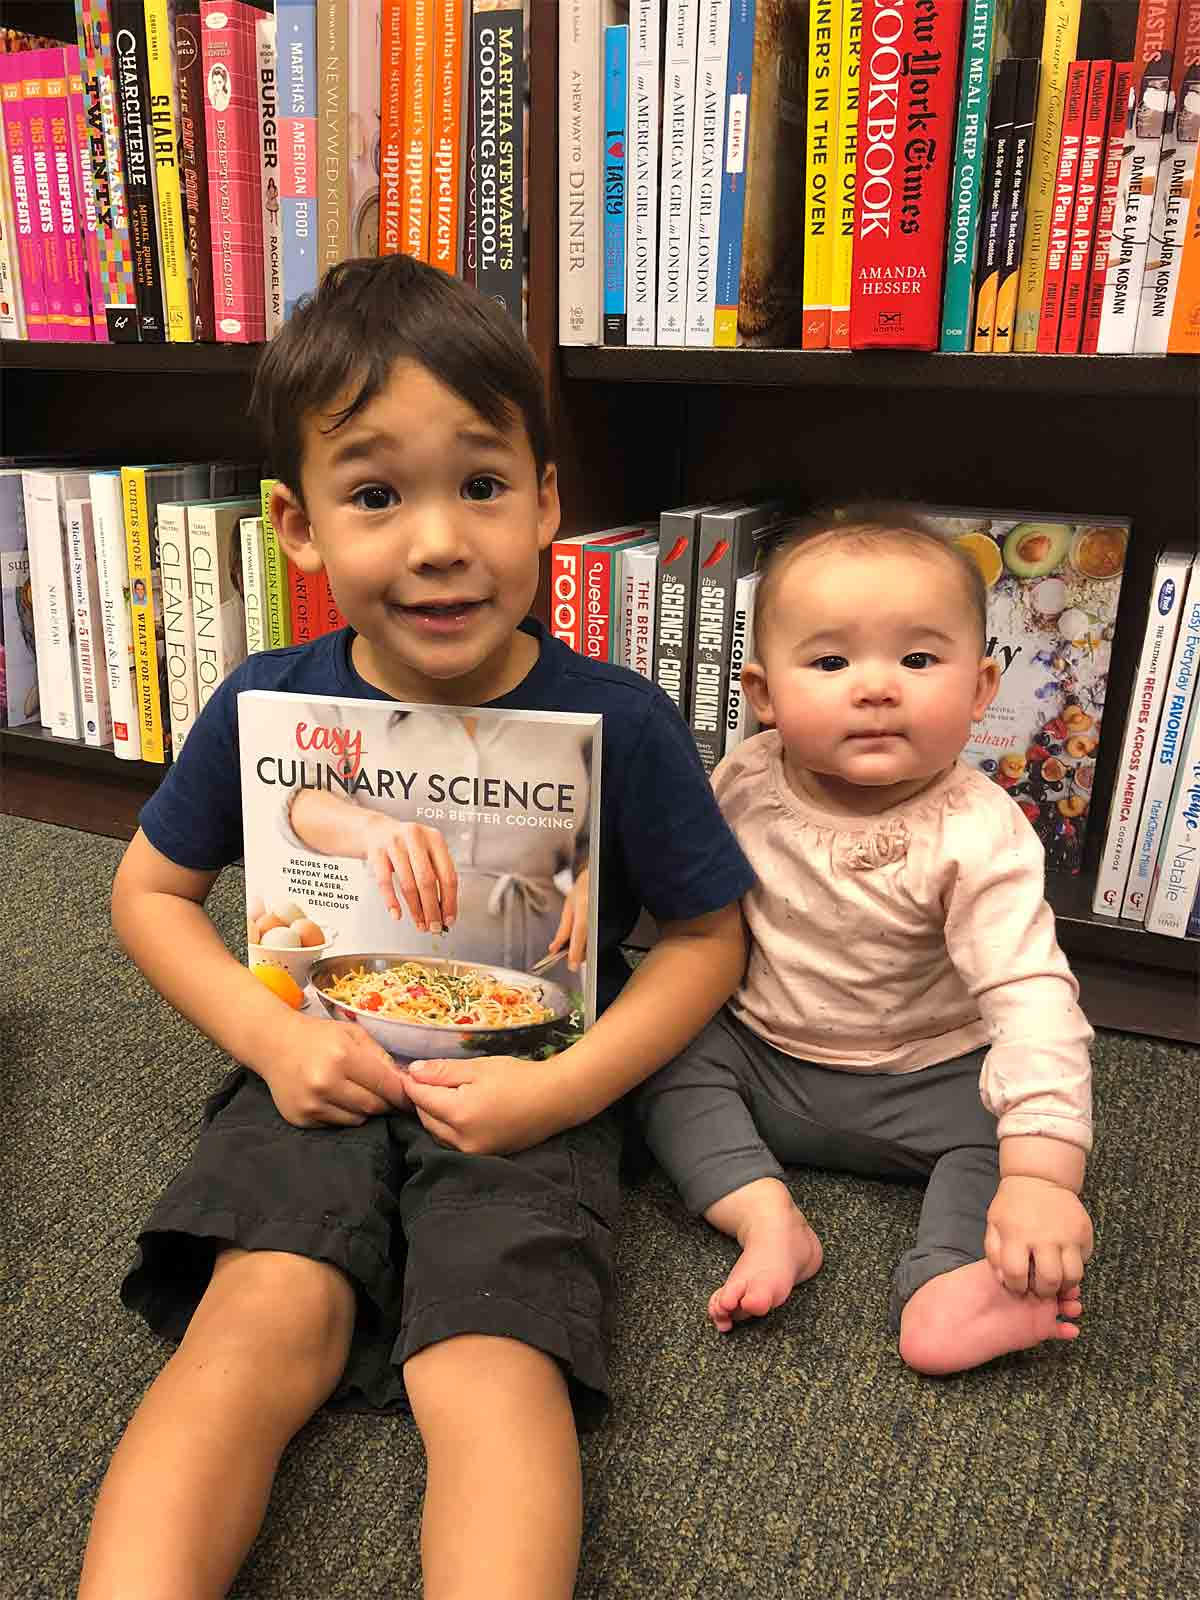 James and Olivia holding a copy of mommy's cookbook